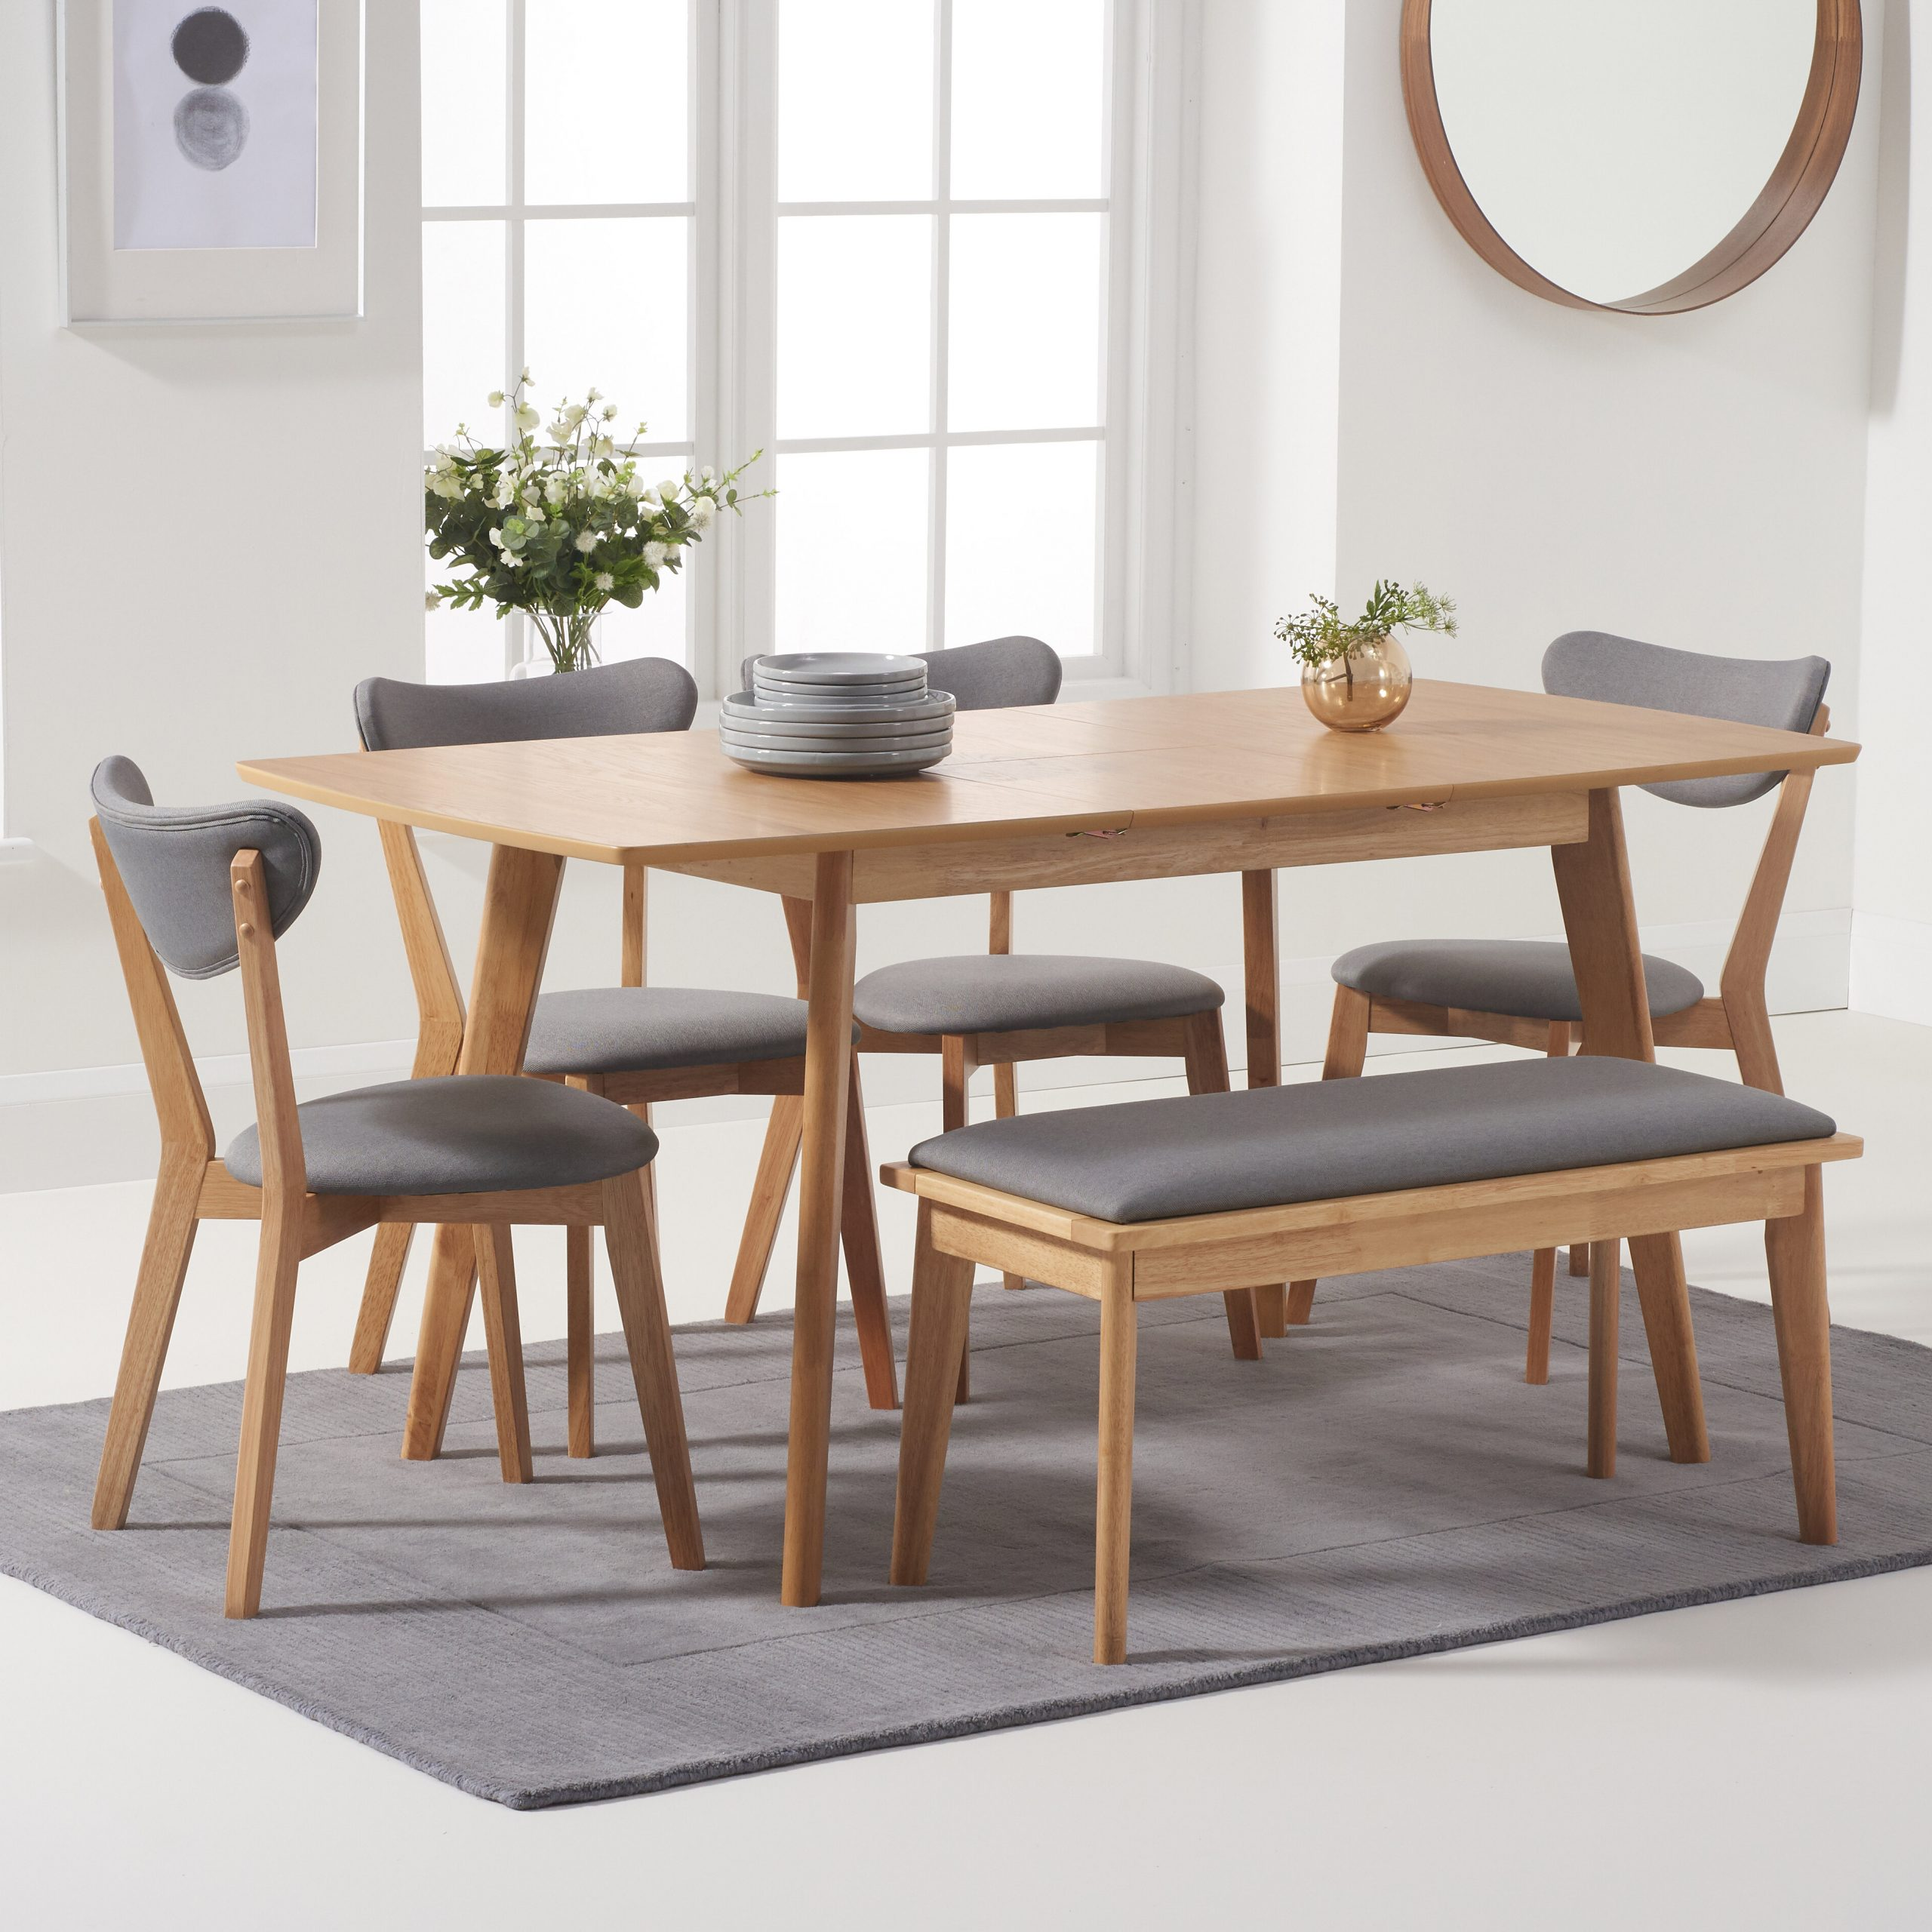 Ideas About Extending Dining Bench, – Howellmagic Dining For Most Current Alfresco Brown Banks Extending Dining Tables (View 14 of 25)